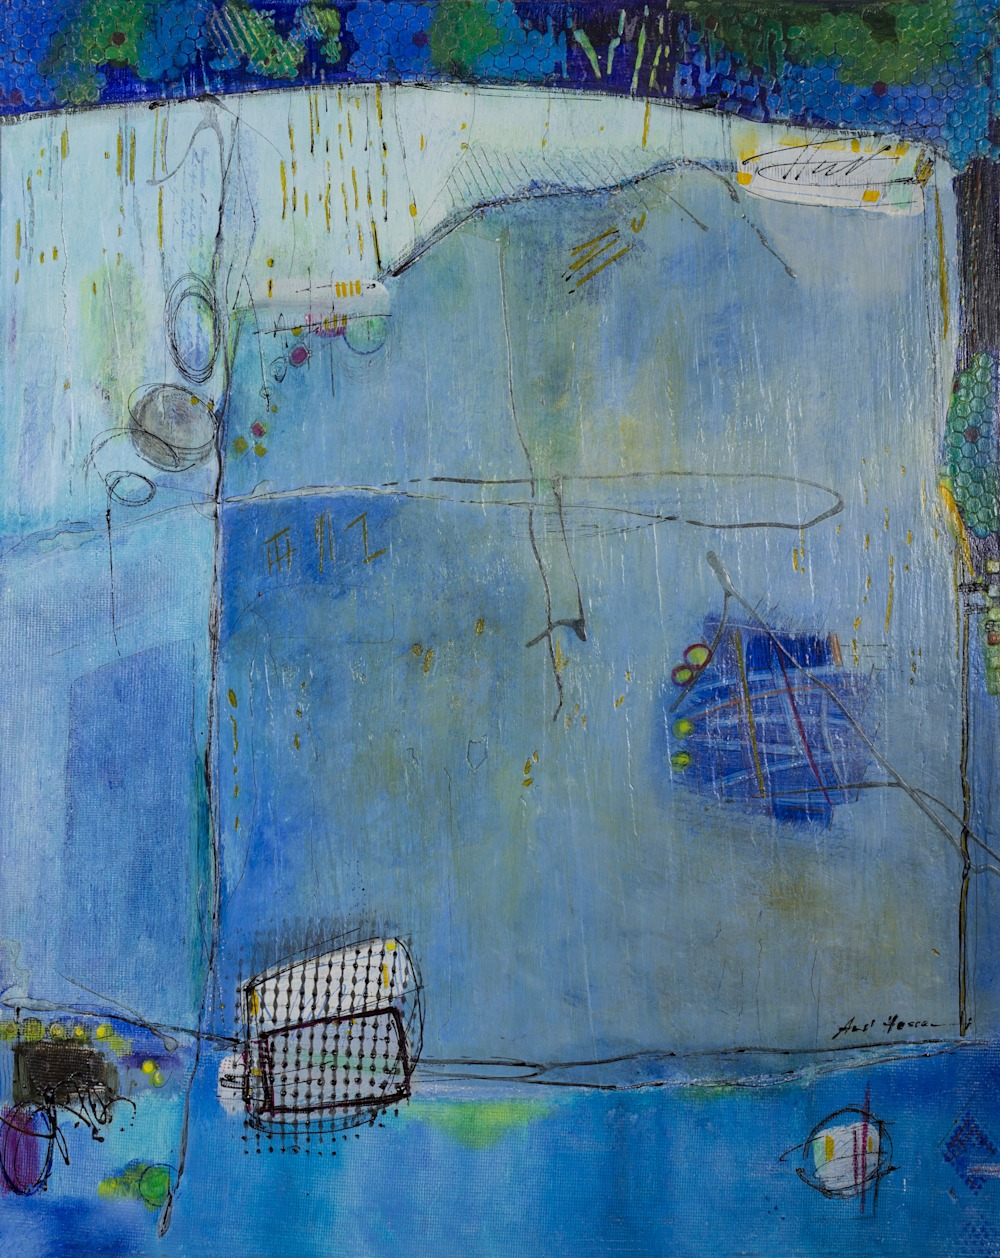 Blue abstract art titled Detached